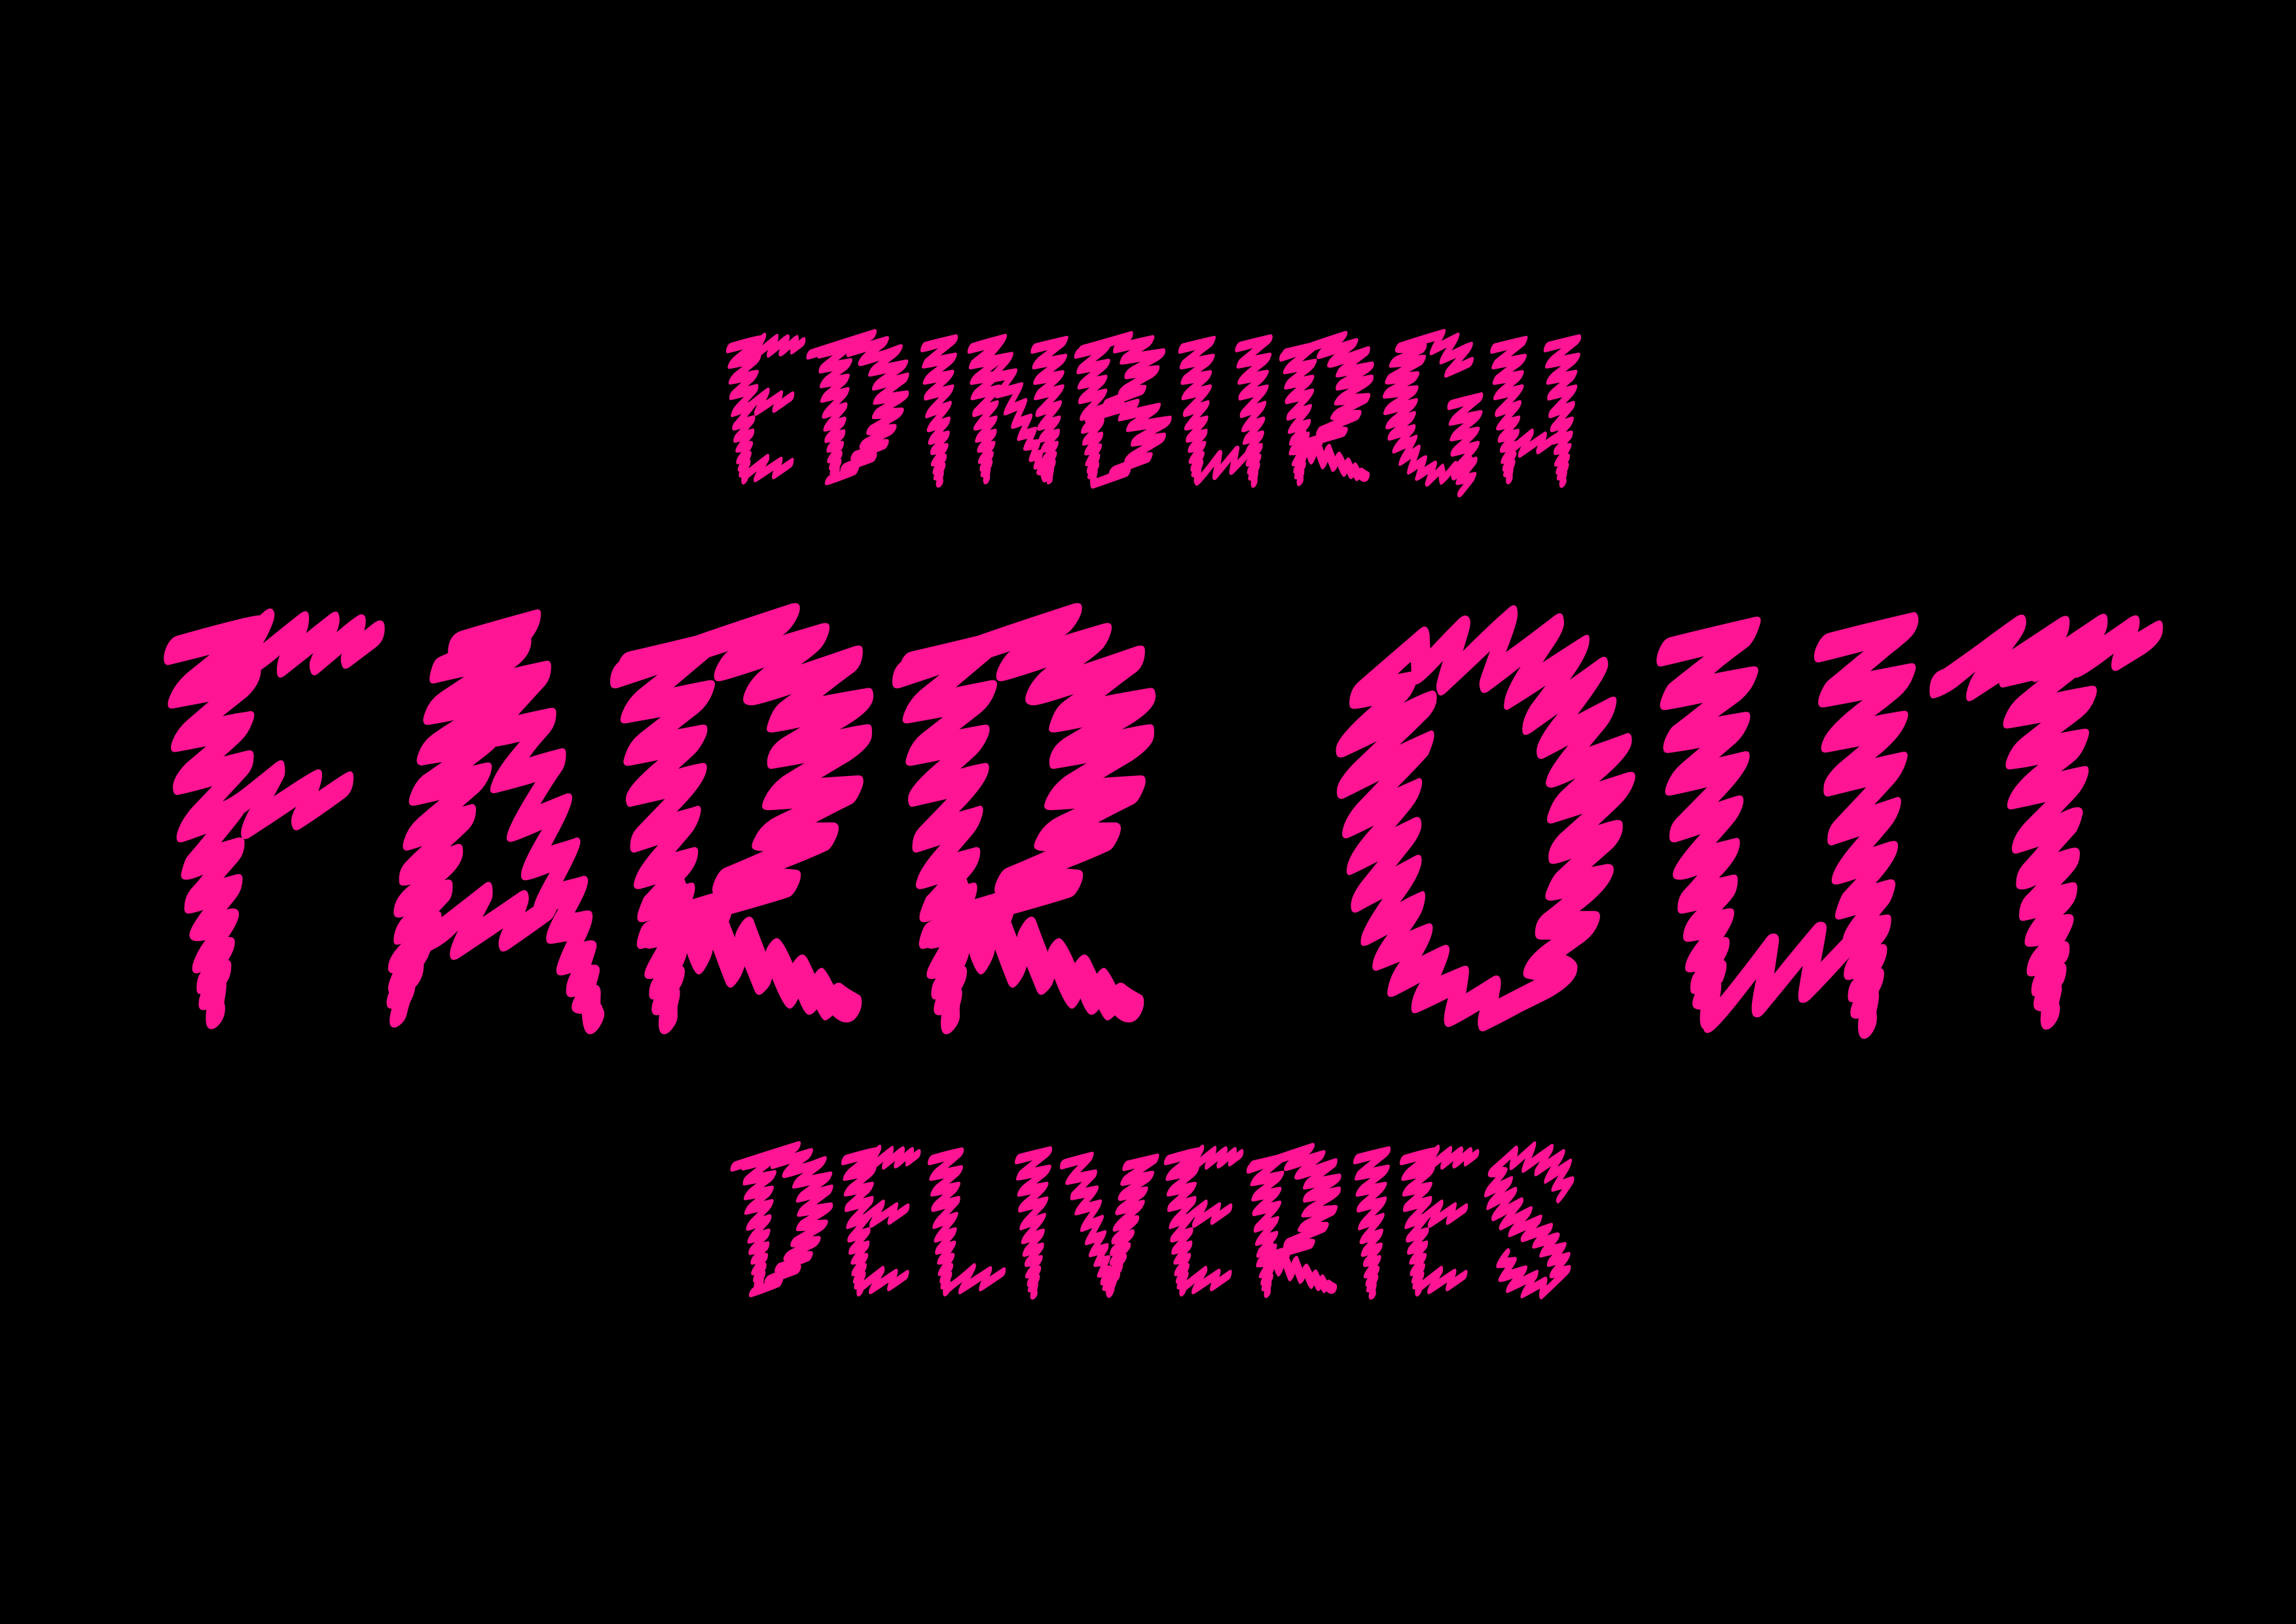 Farr Out Deliveries